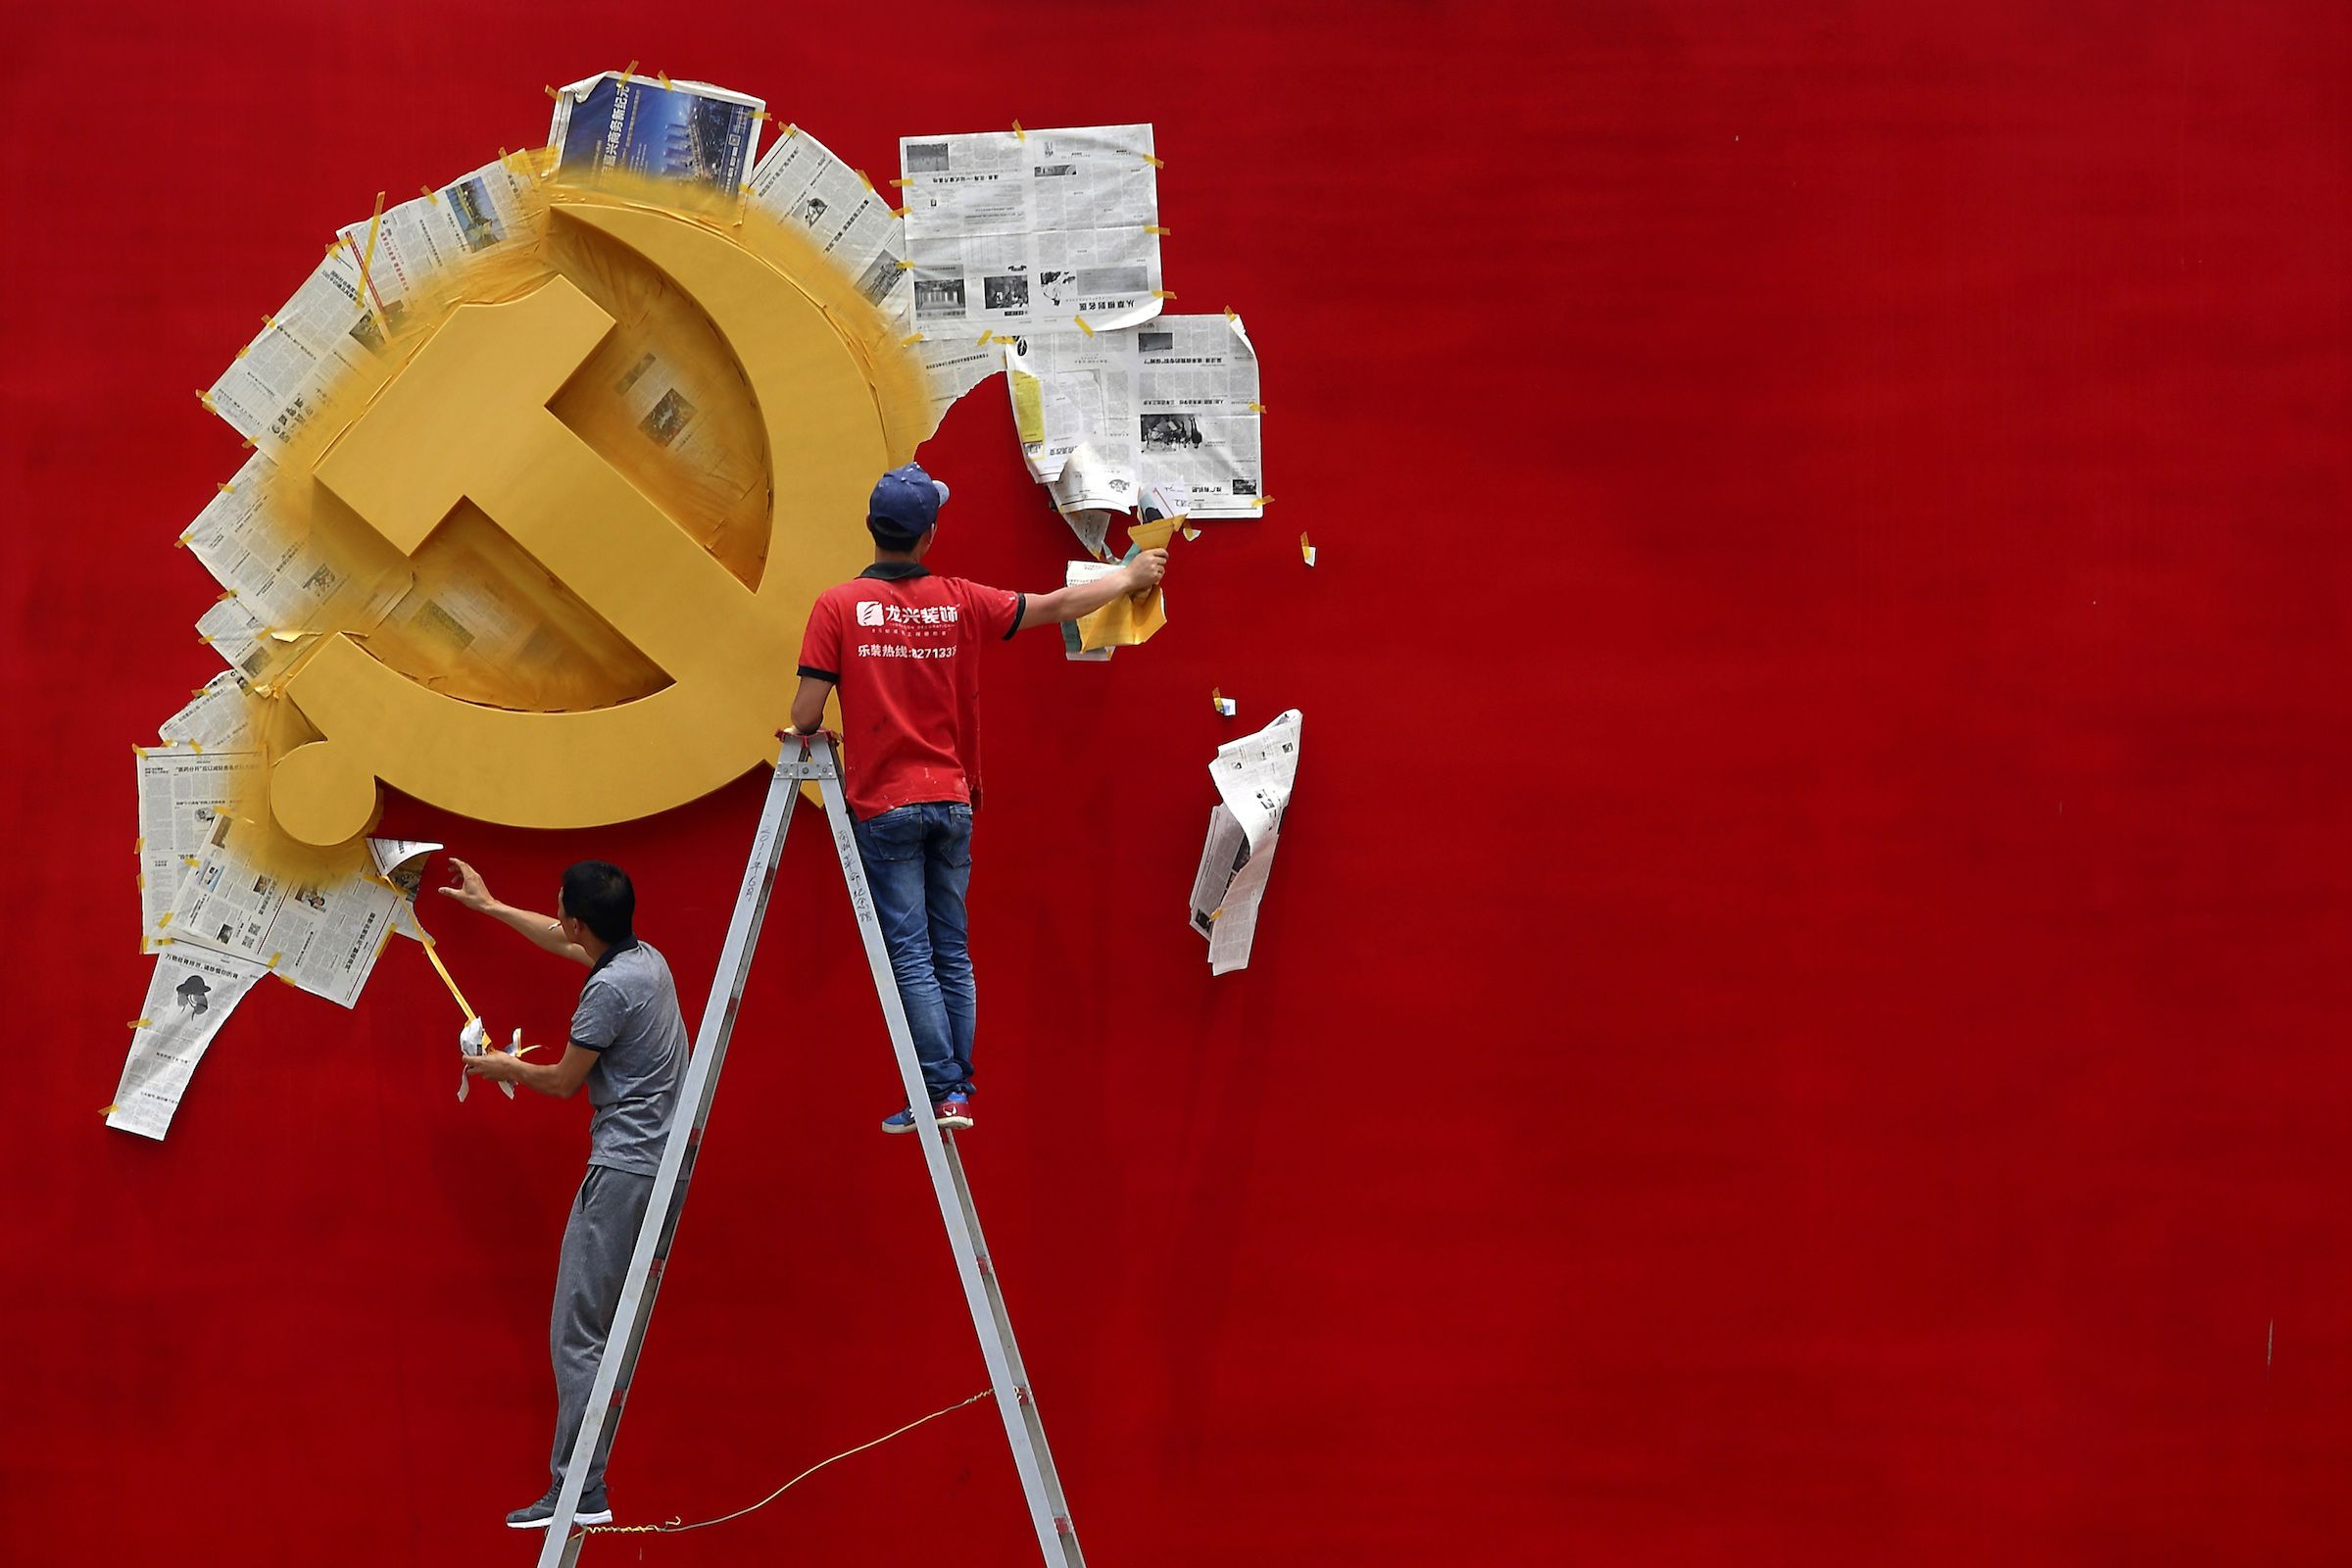 Workers peel papers off a wall as they re-paint the Chinese Communist Party flag on it at the Nanhu revolution memorial museum in Jiaxing, Zhejiang province May 21